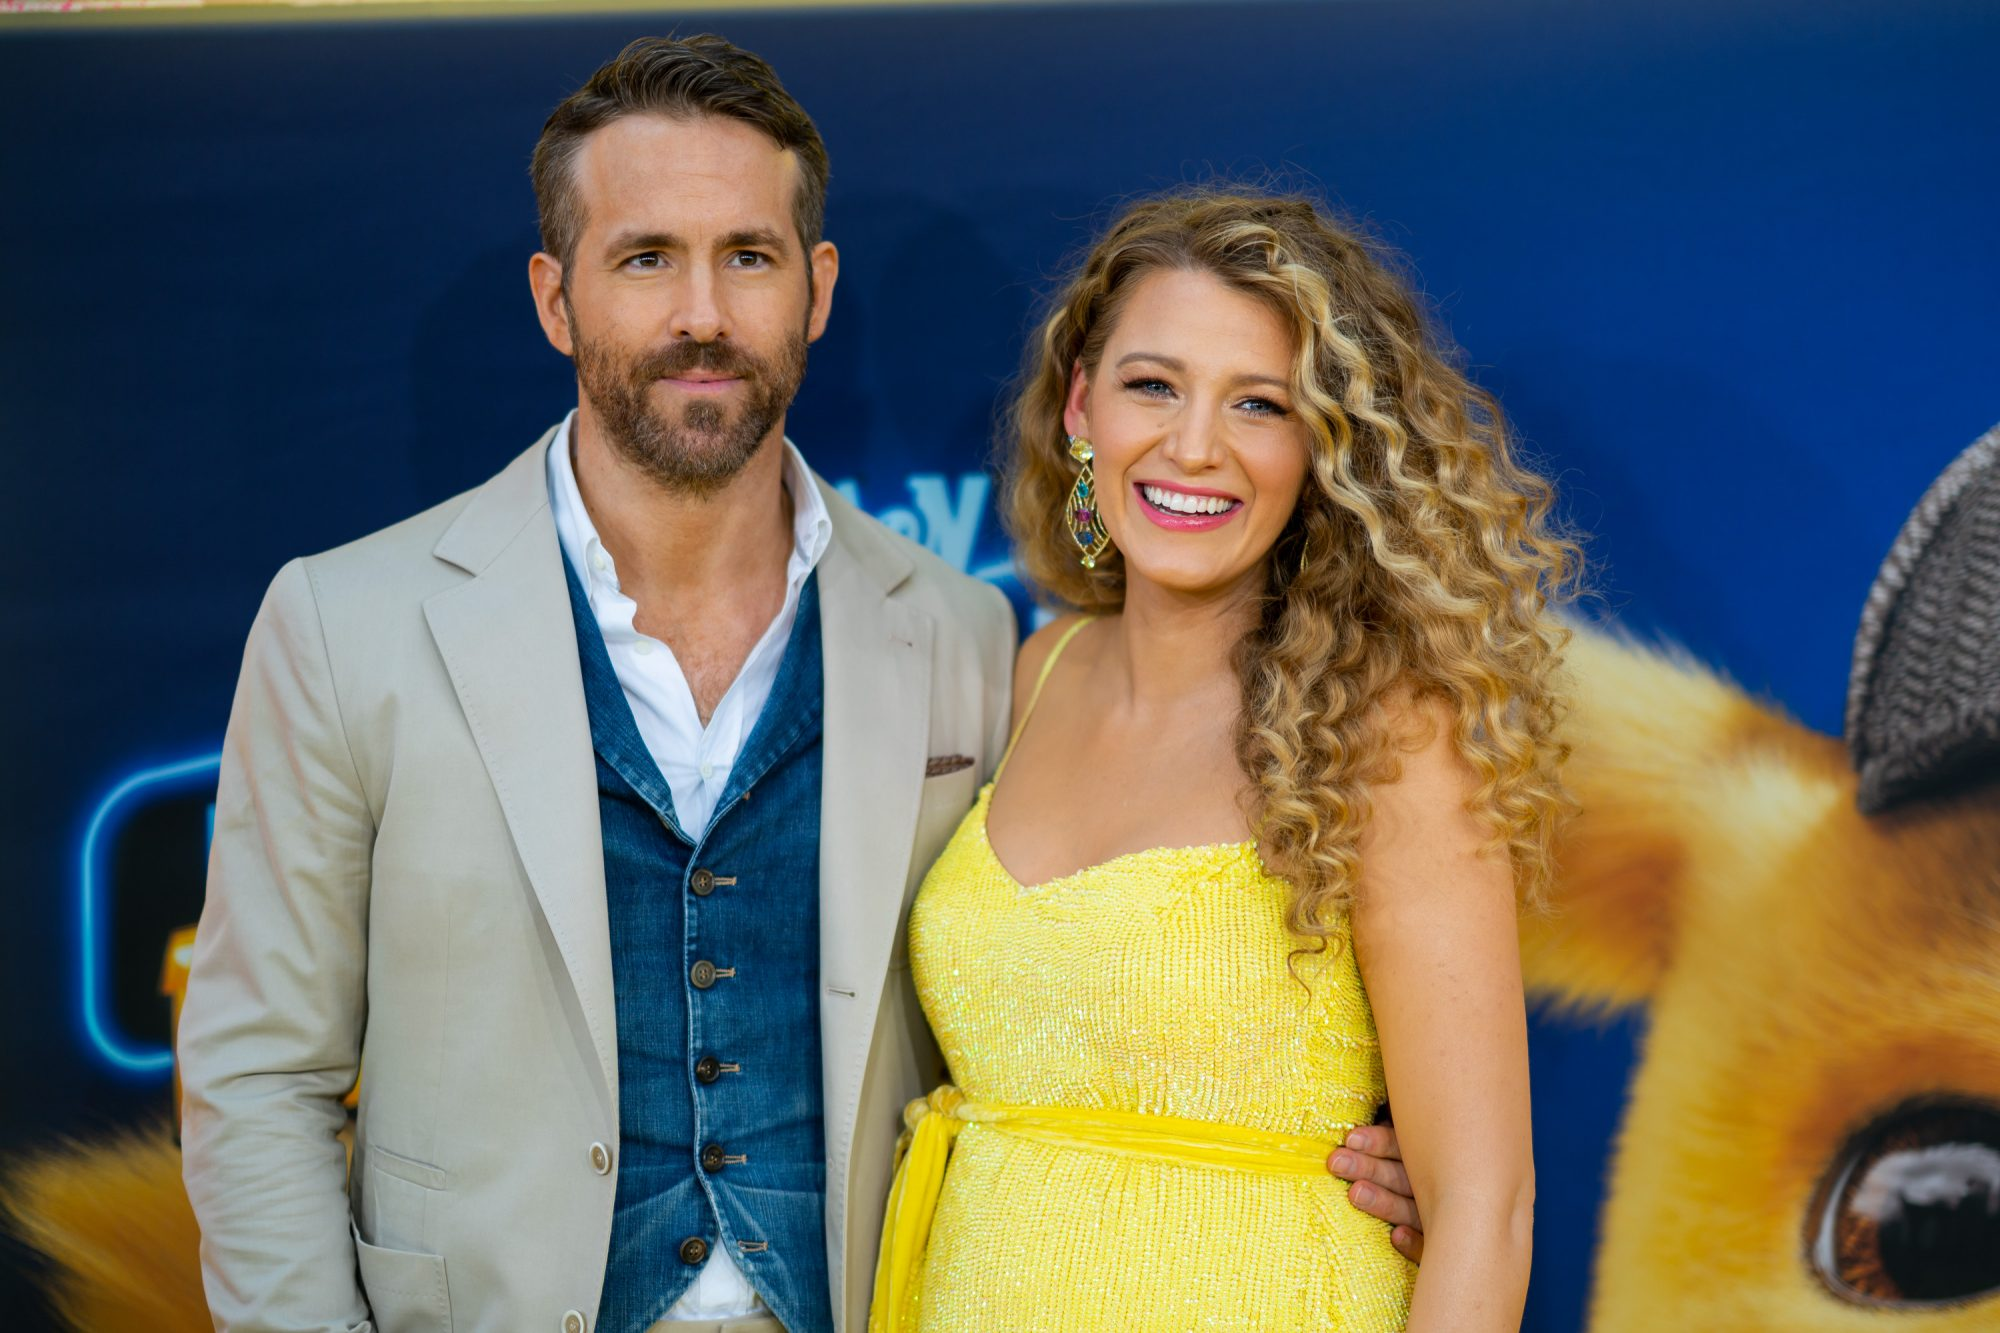 Blake Lively and Ryan Reynolds Made A Rare Outing Together